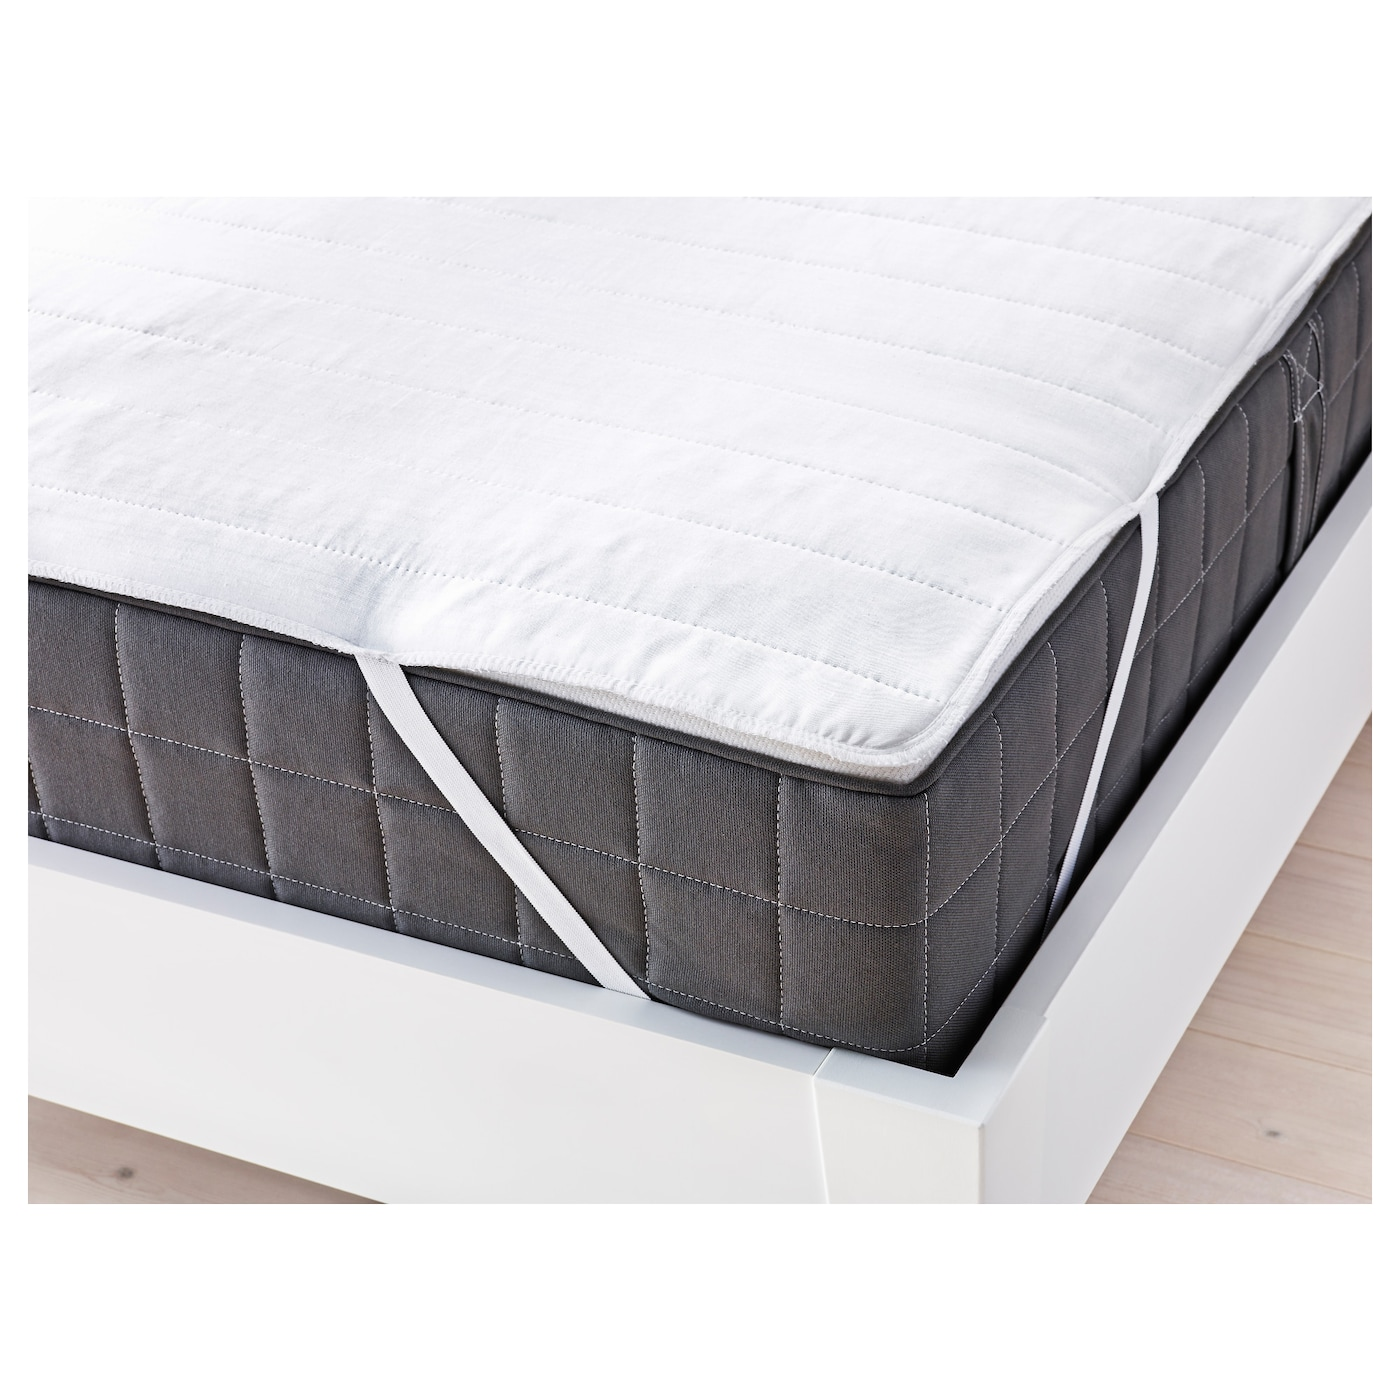 196 Ngsvide Mattress Protector Double Ikea